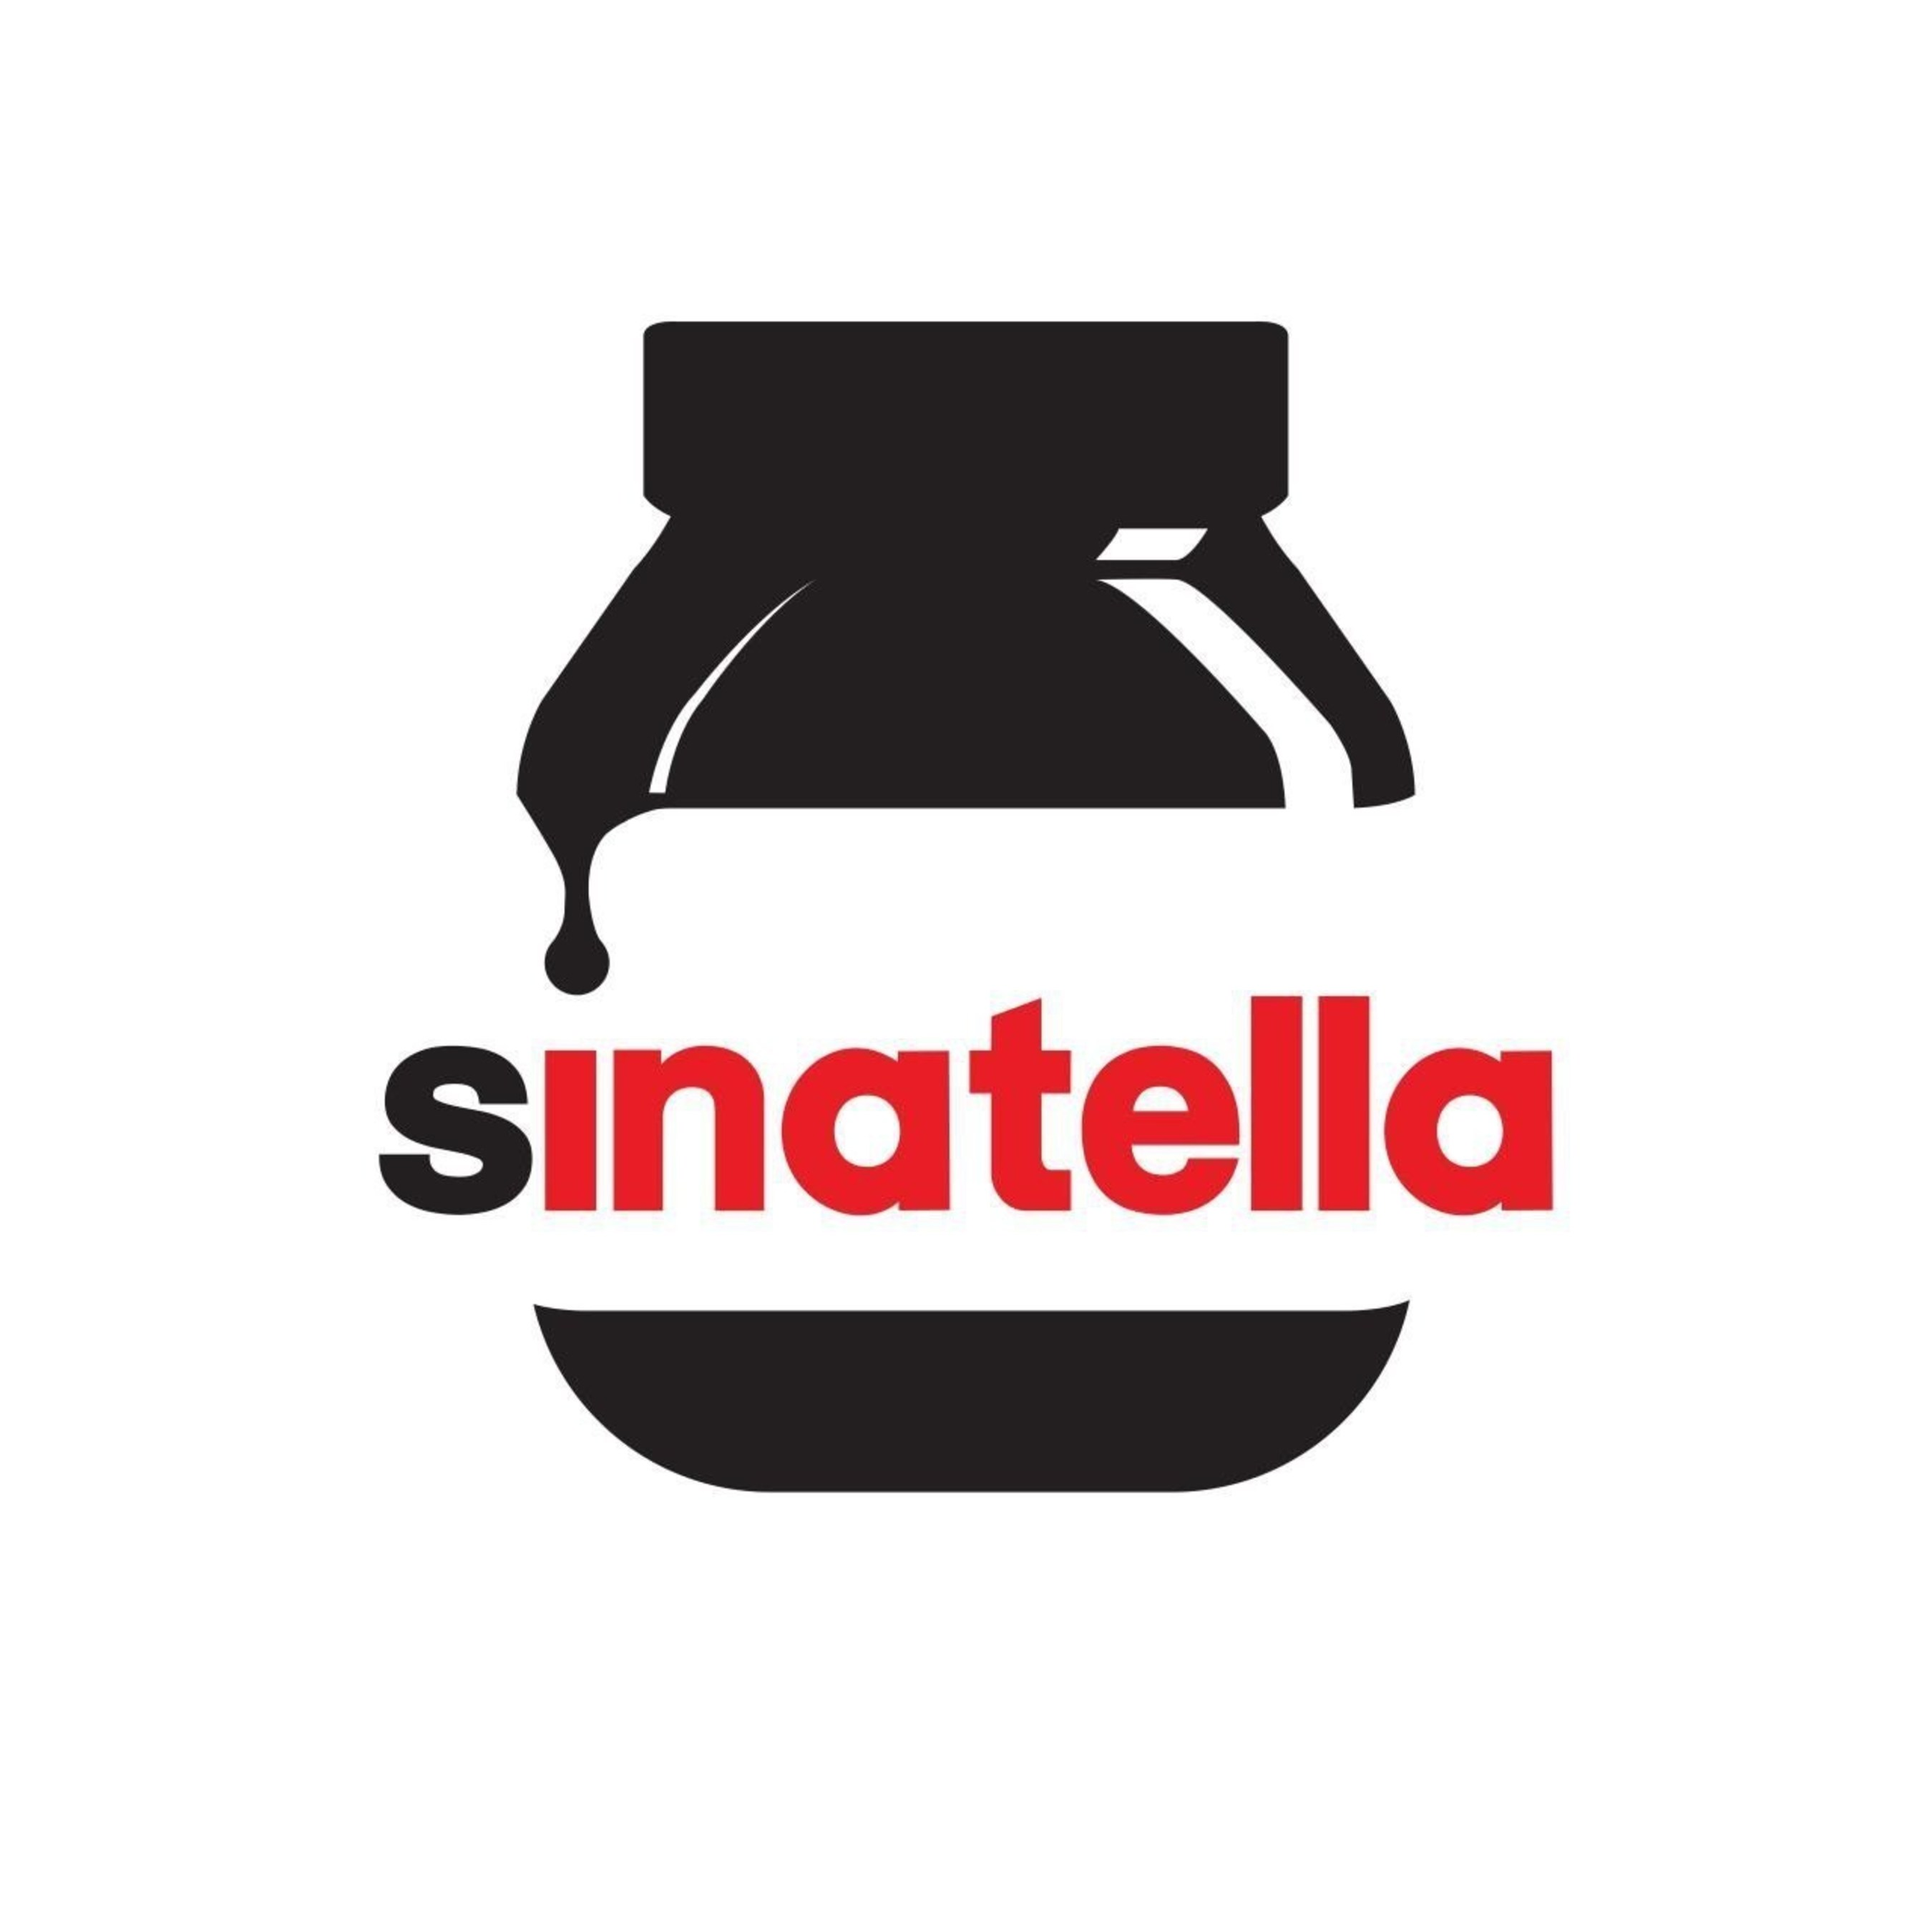 Sinatella Makes Nutella A New Amusement for Millions of